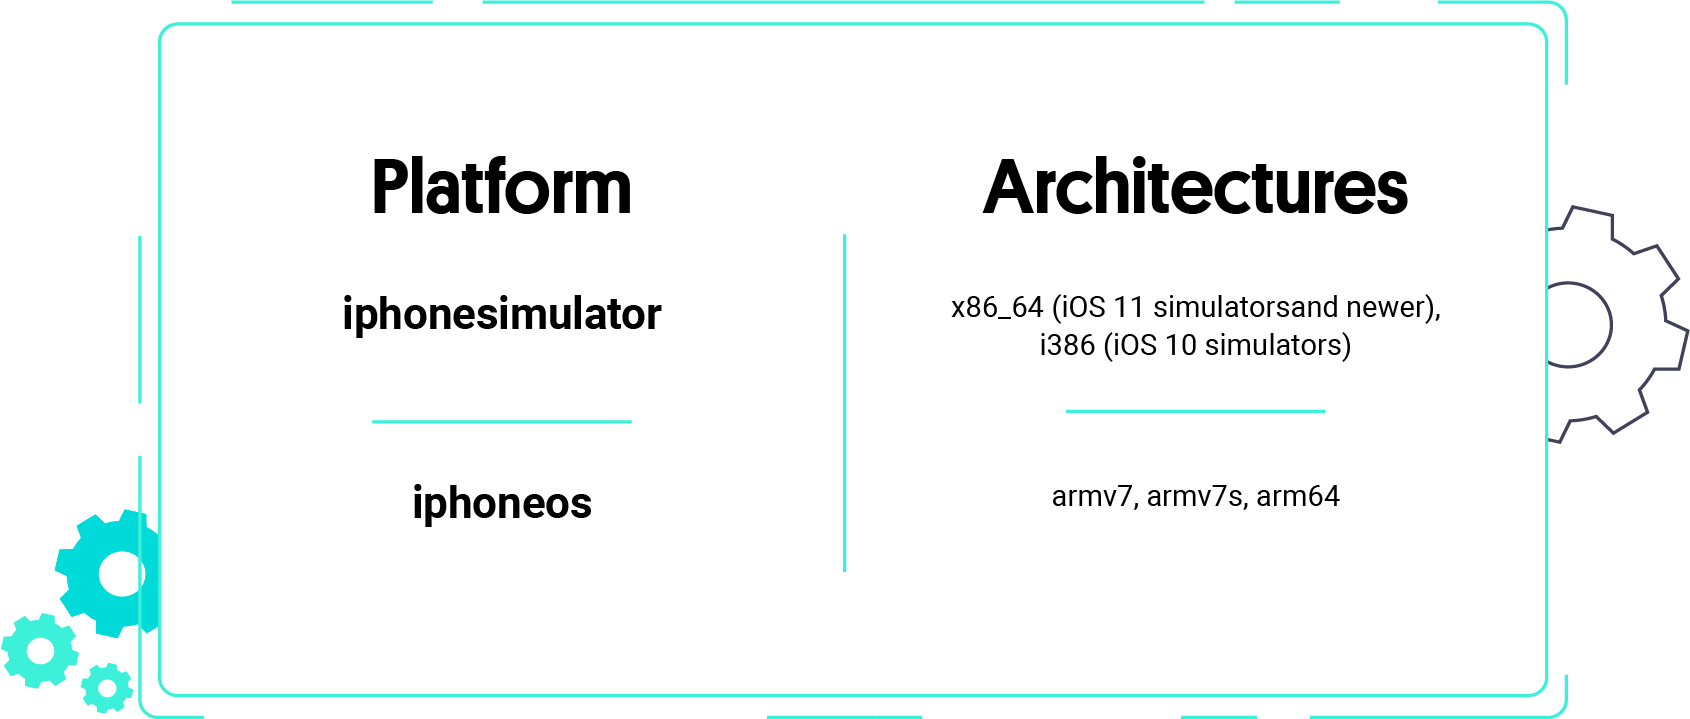 Here's a breakdown of the platforms together with their architectures.